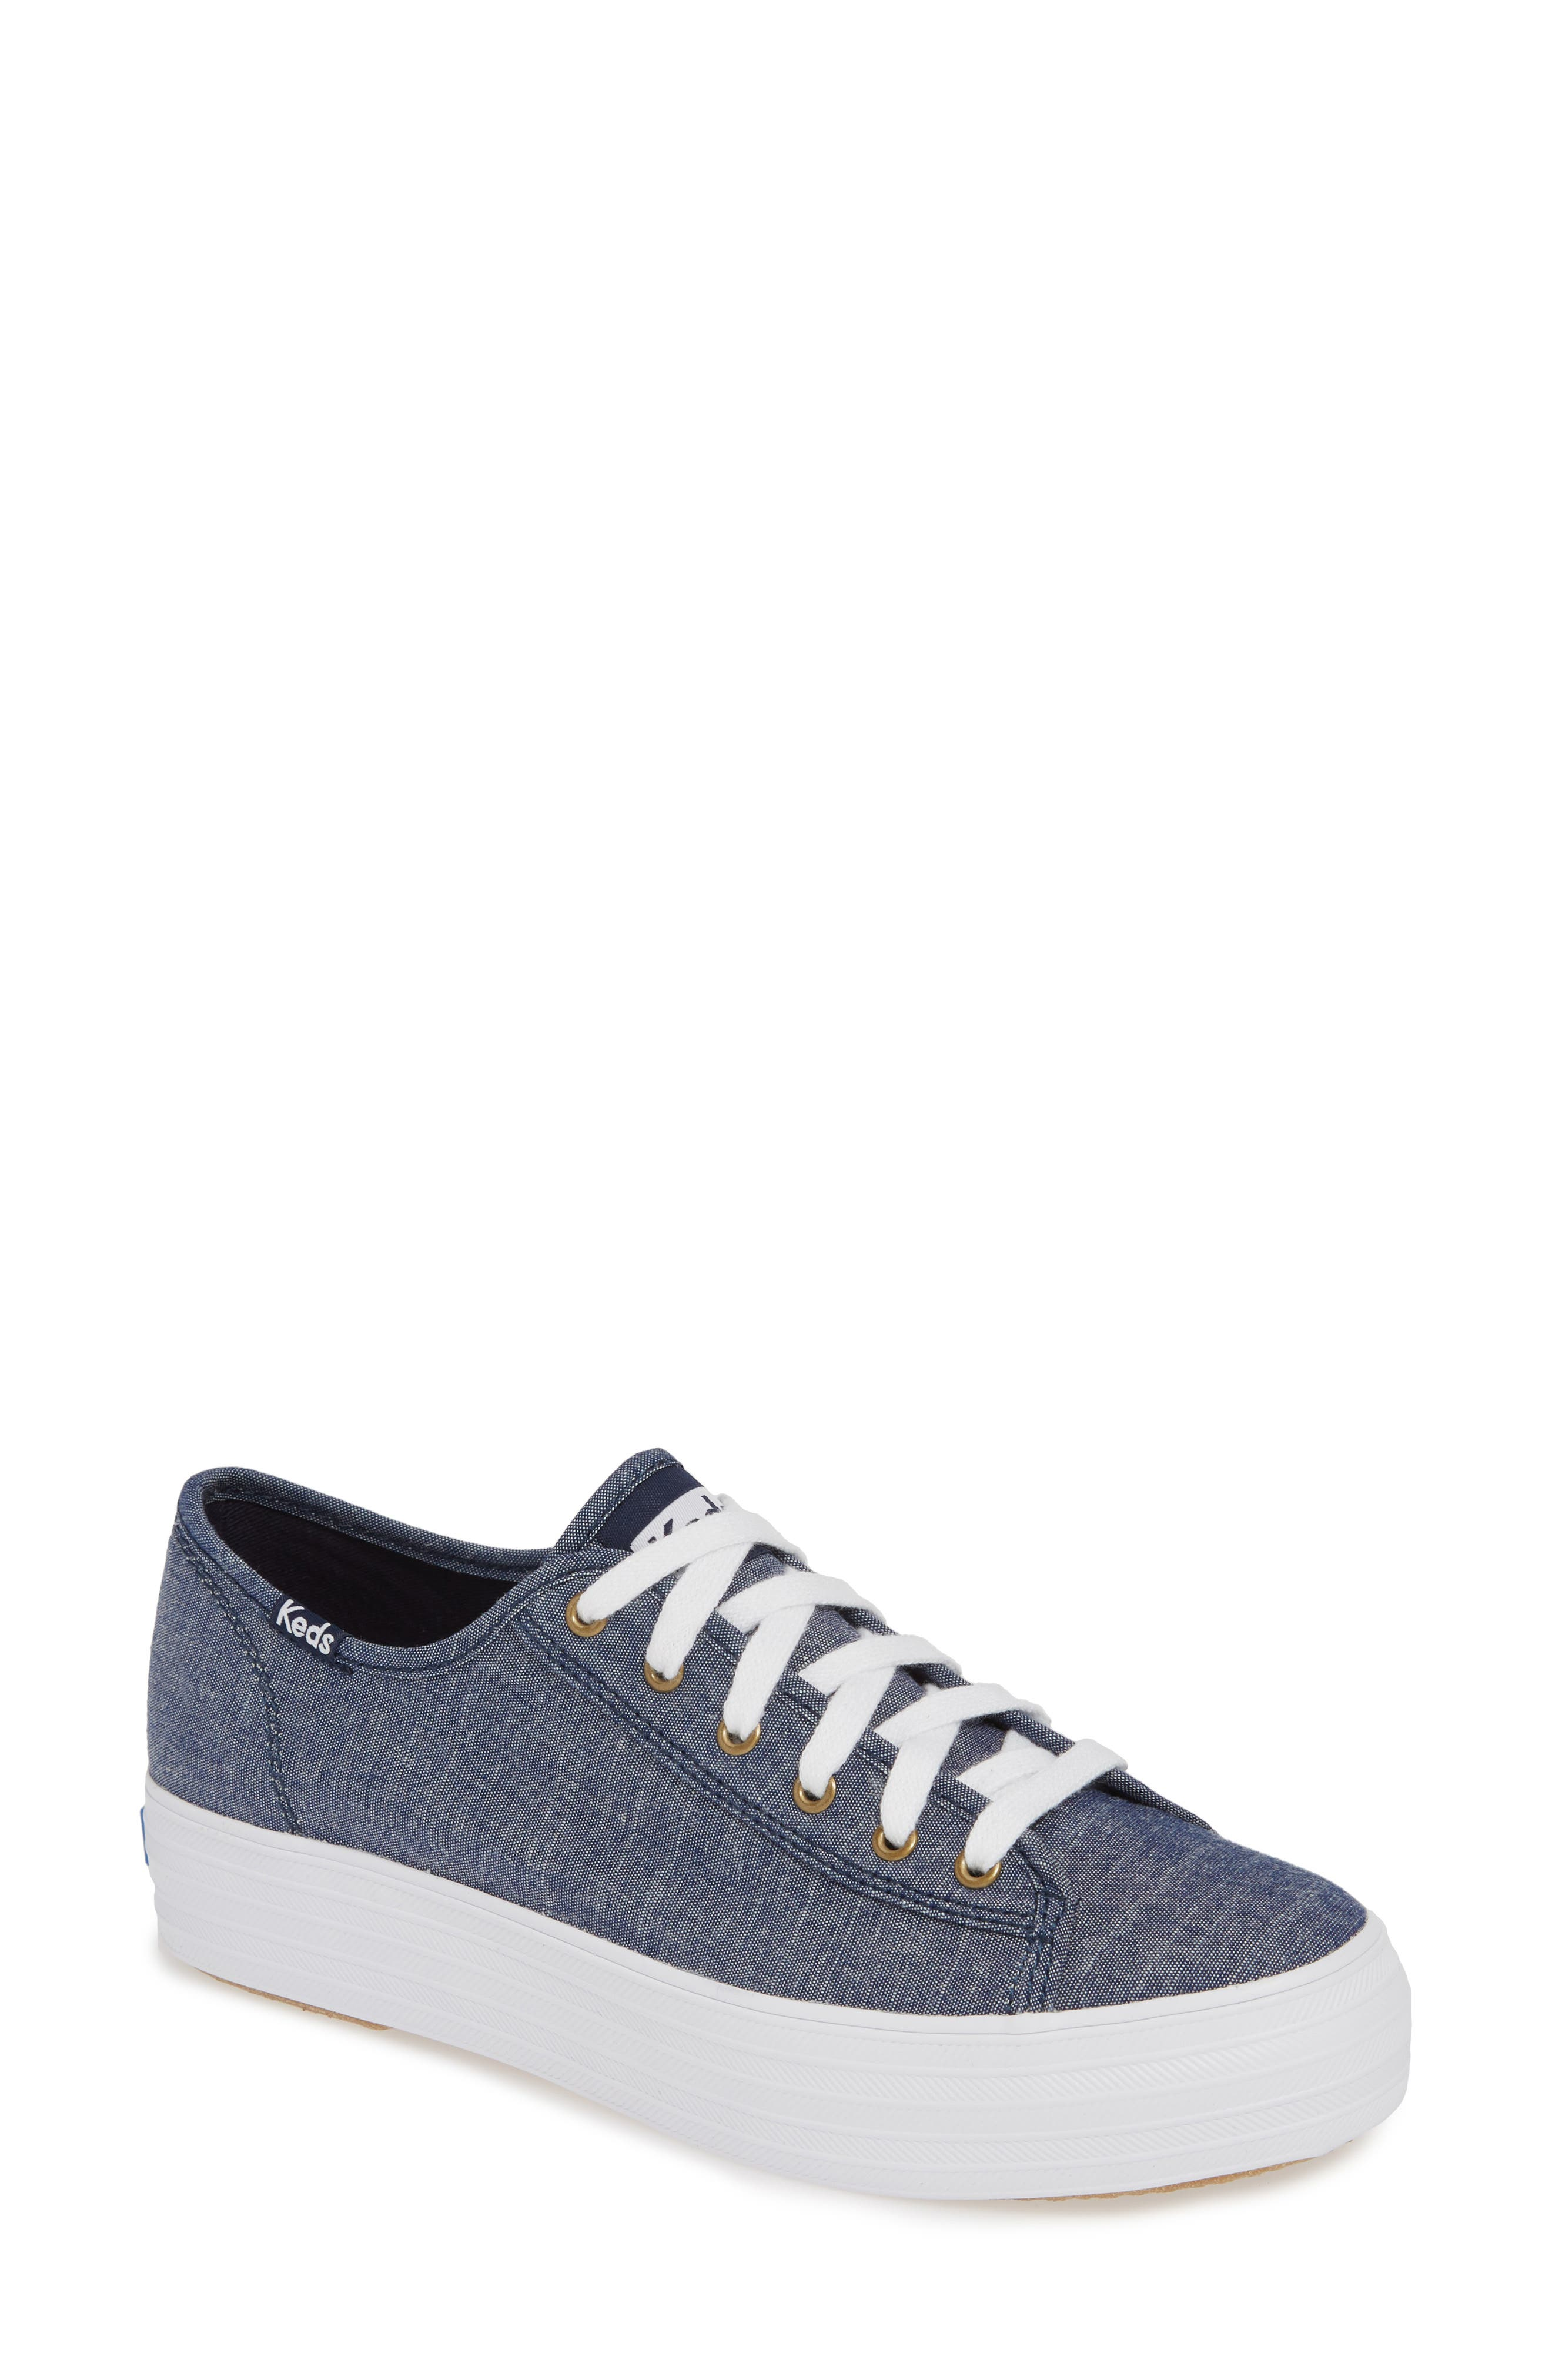 KEDS<SUP>®</SUP> Triple Kick Platform Chambray Sneaker, Main, color, BLUE